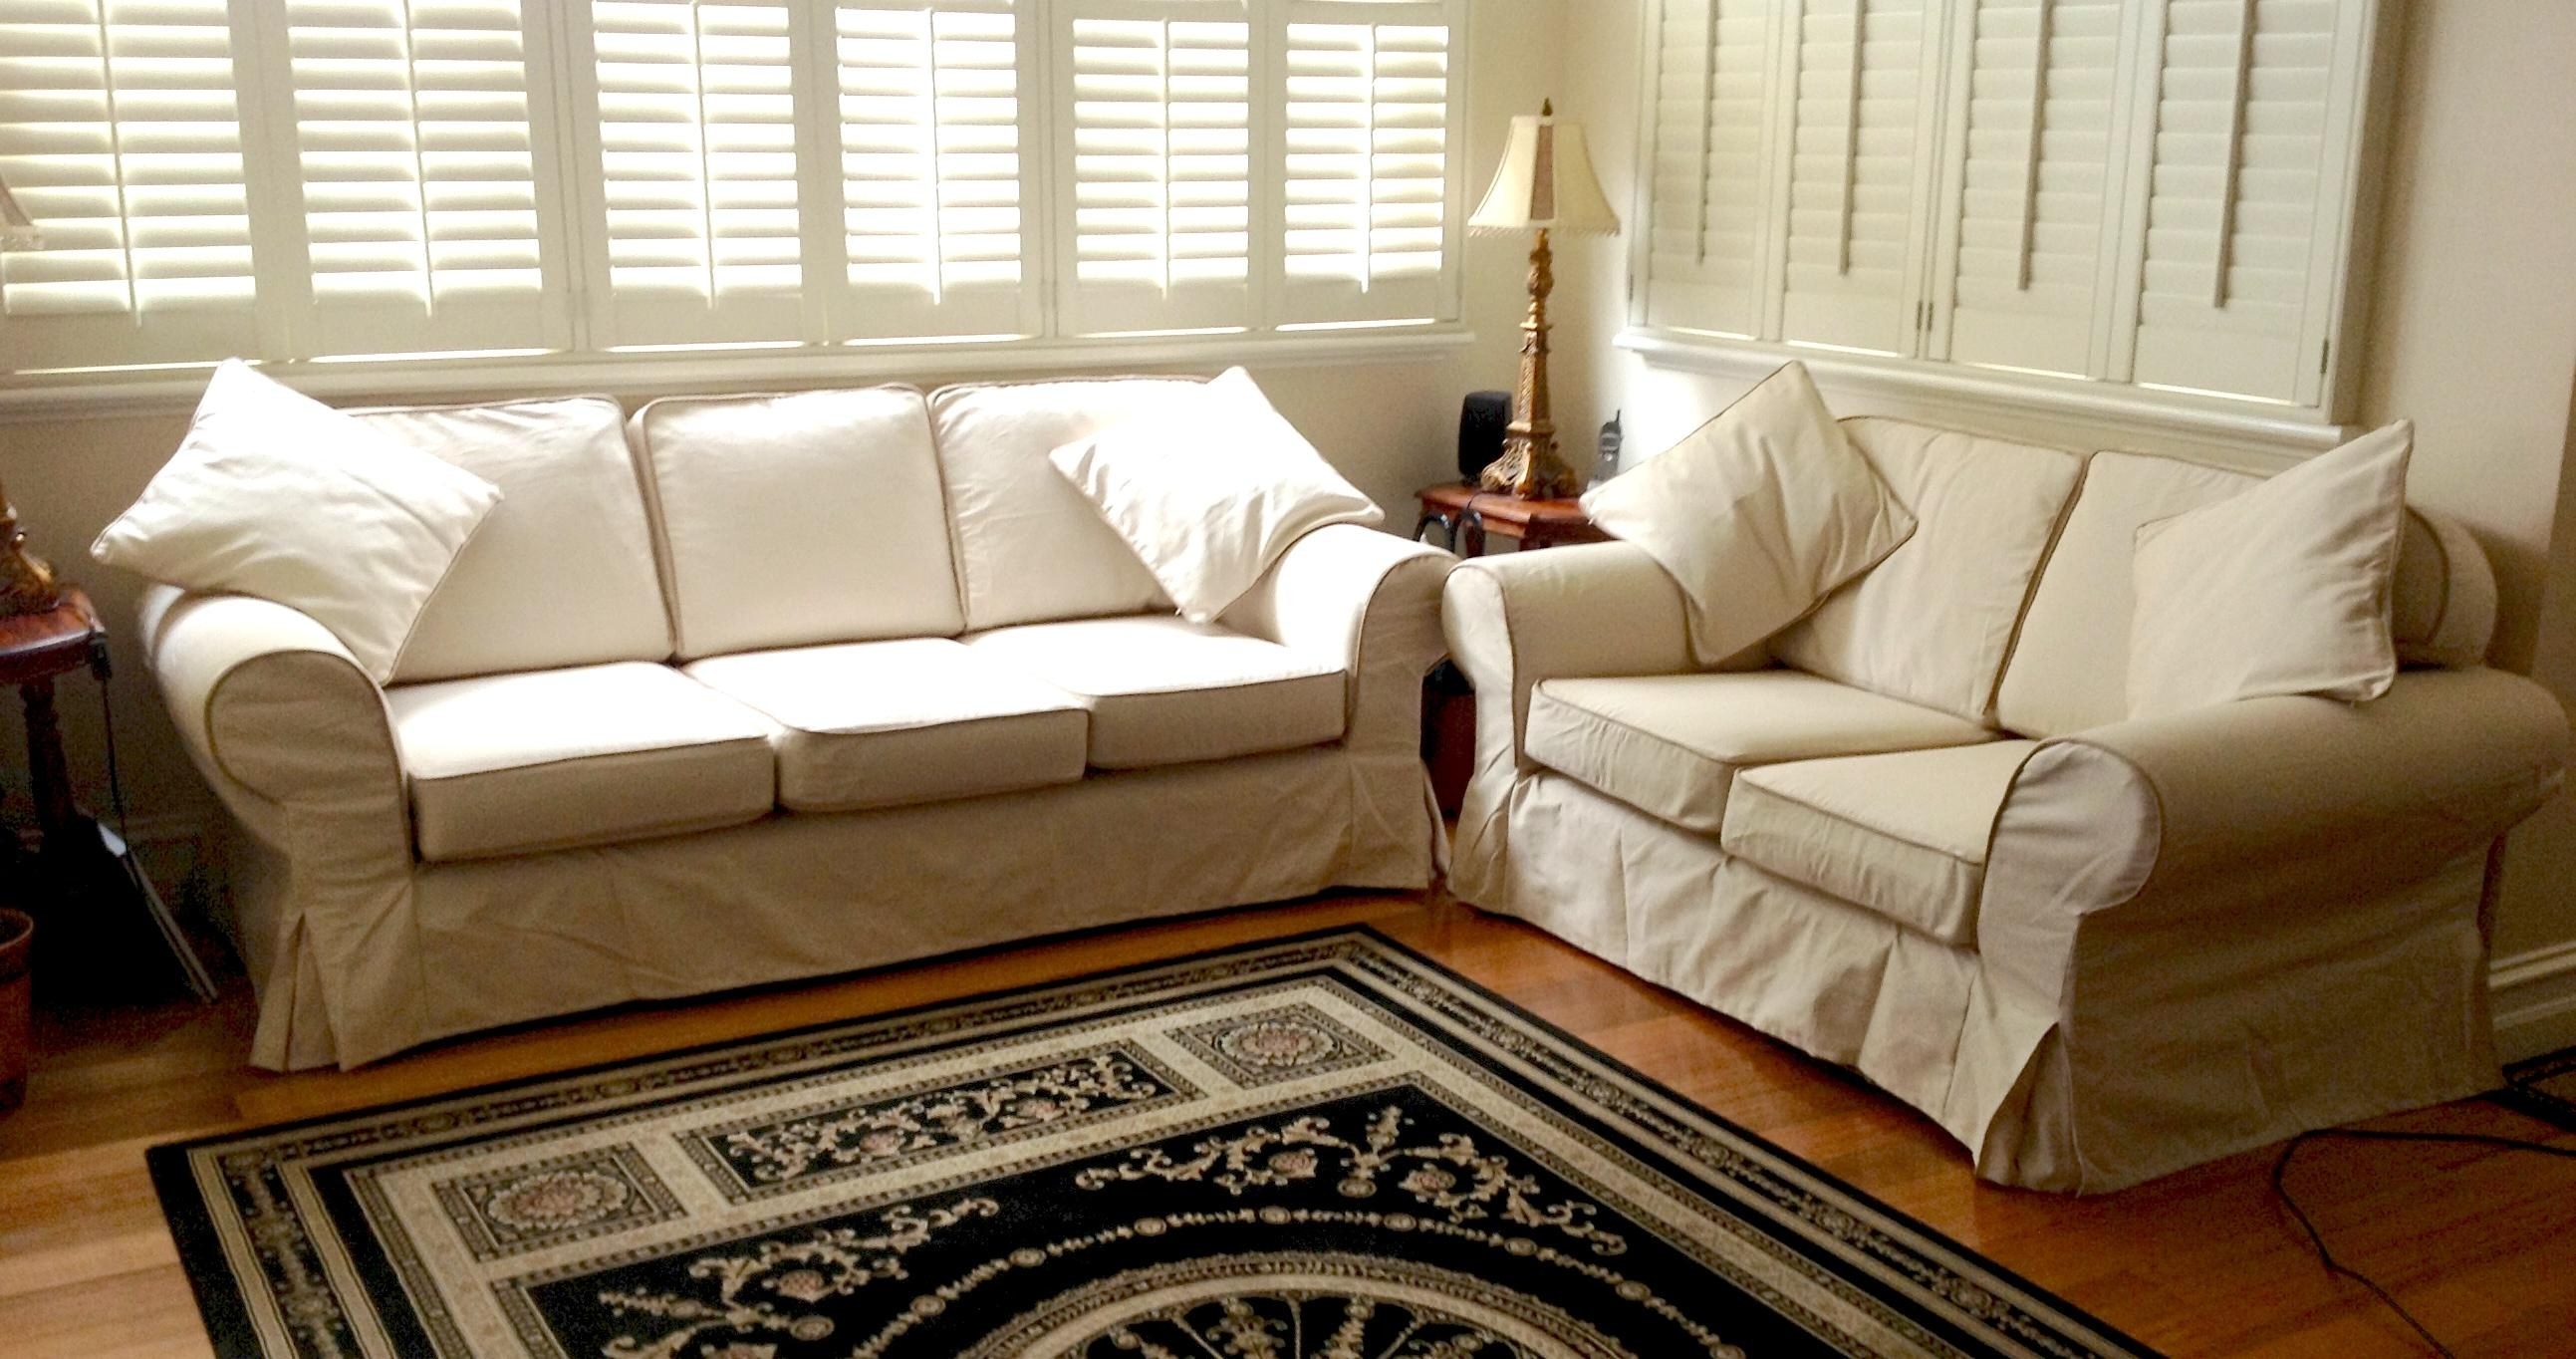 Custom Slipcovers And Couch Cover For Any Sofa Online Inside Sofa Loveseat Slipcovers (View 4 of 25)